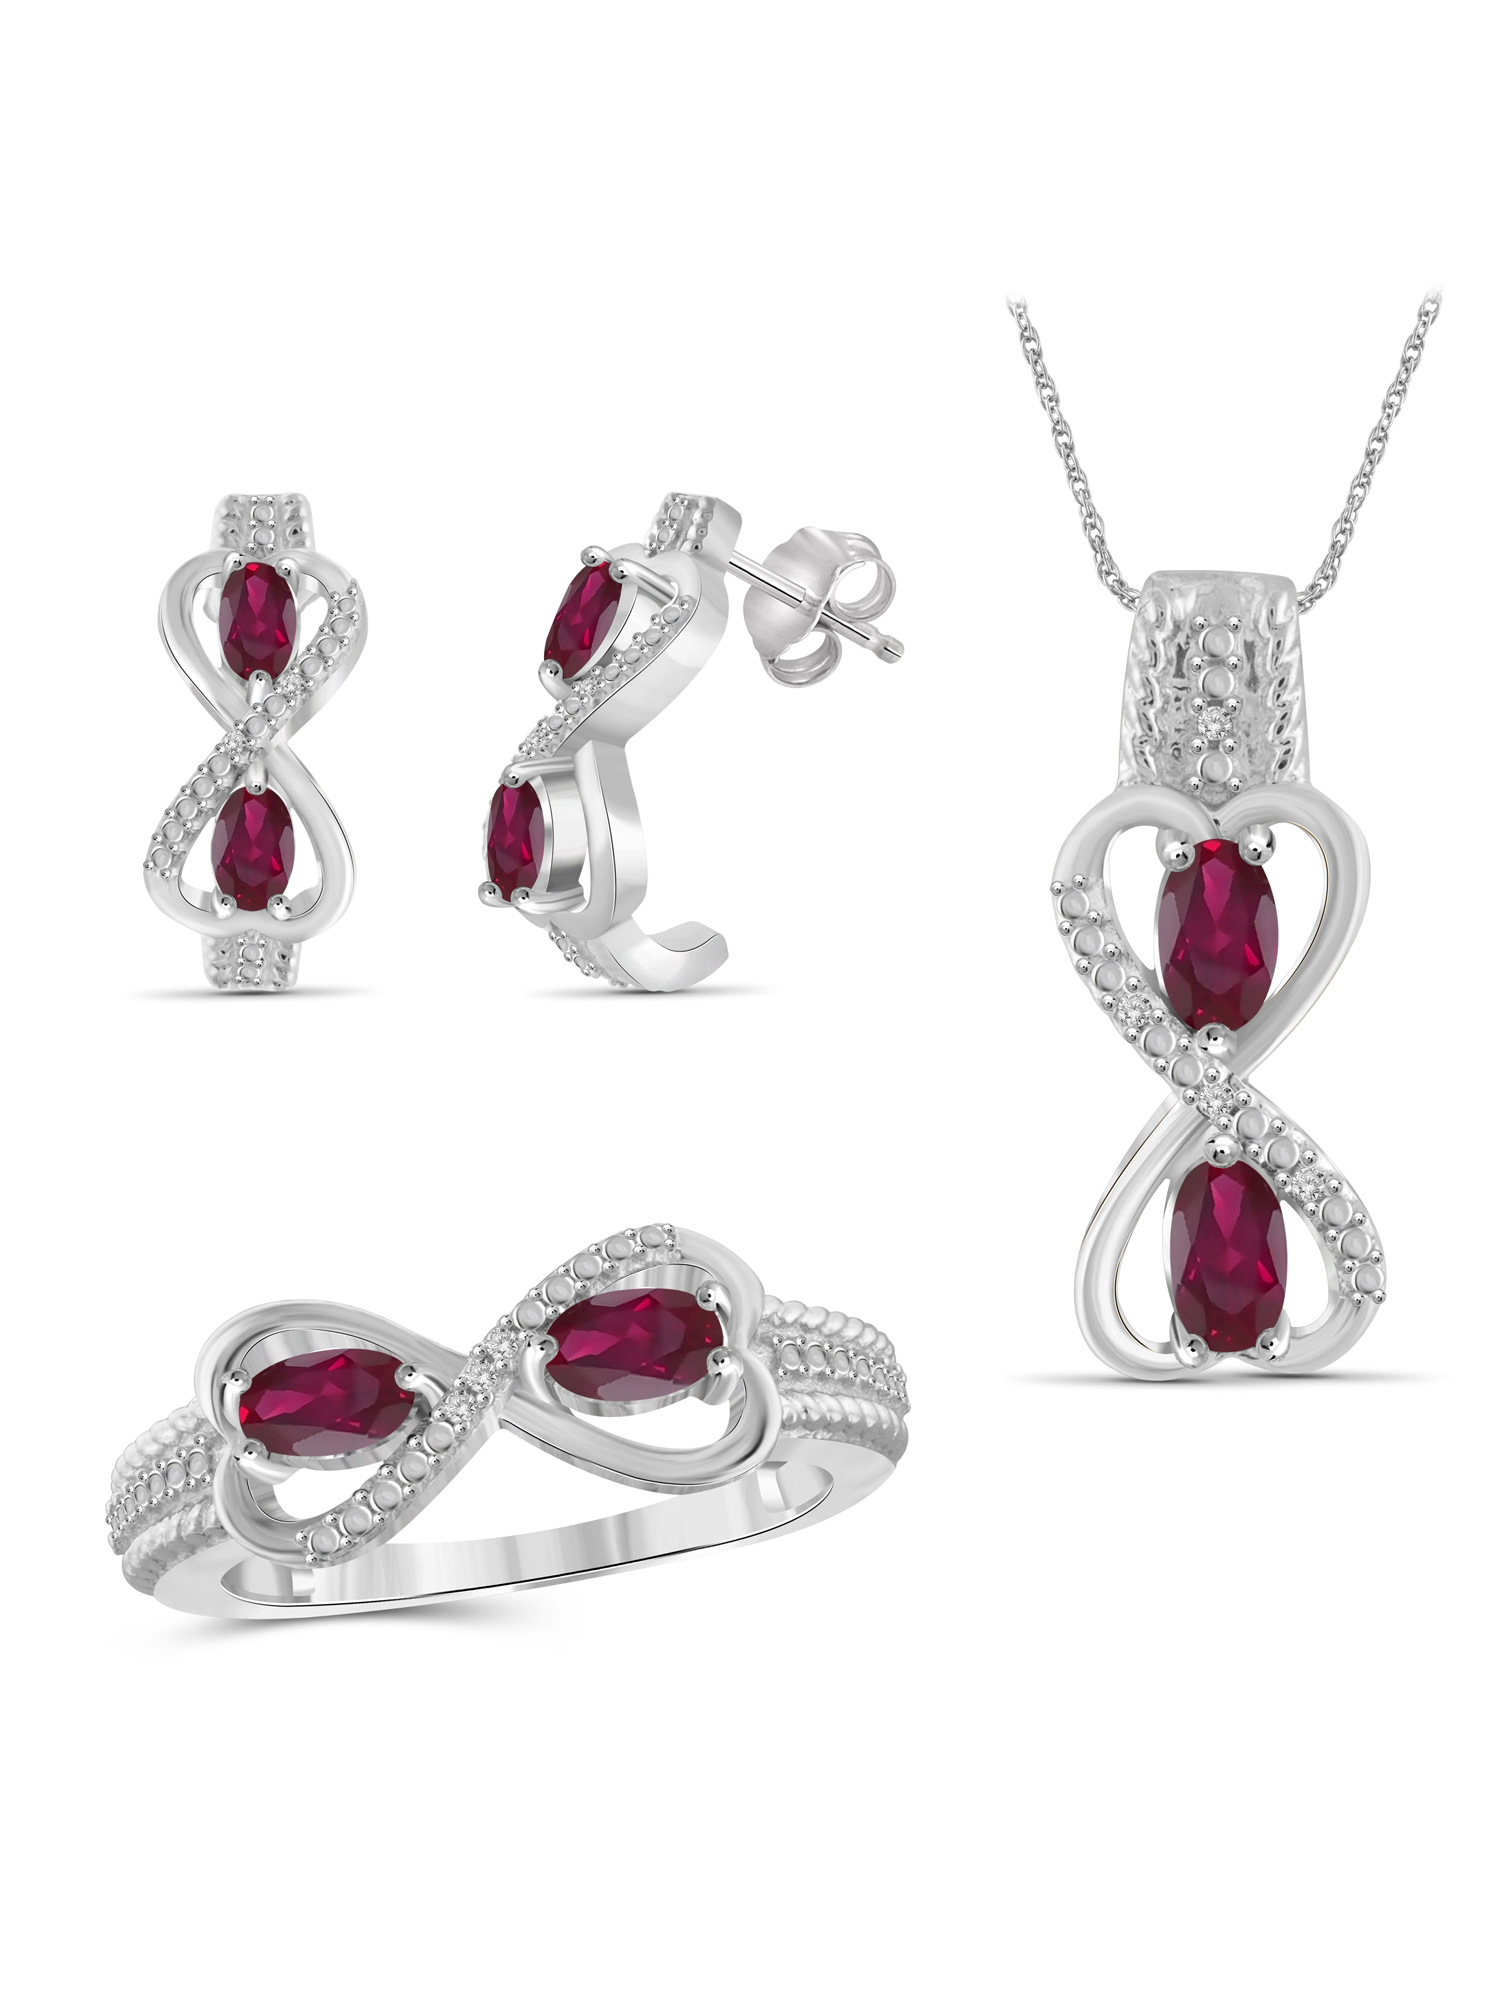 JewelersClub 2.00 Carat T.G.W. Ruby And White Diamond Accent Sterling Silver 3-Piece Jewelry set by JewelersClub